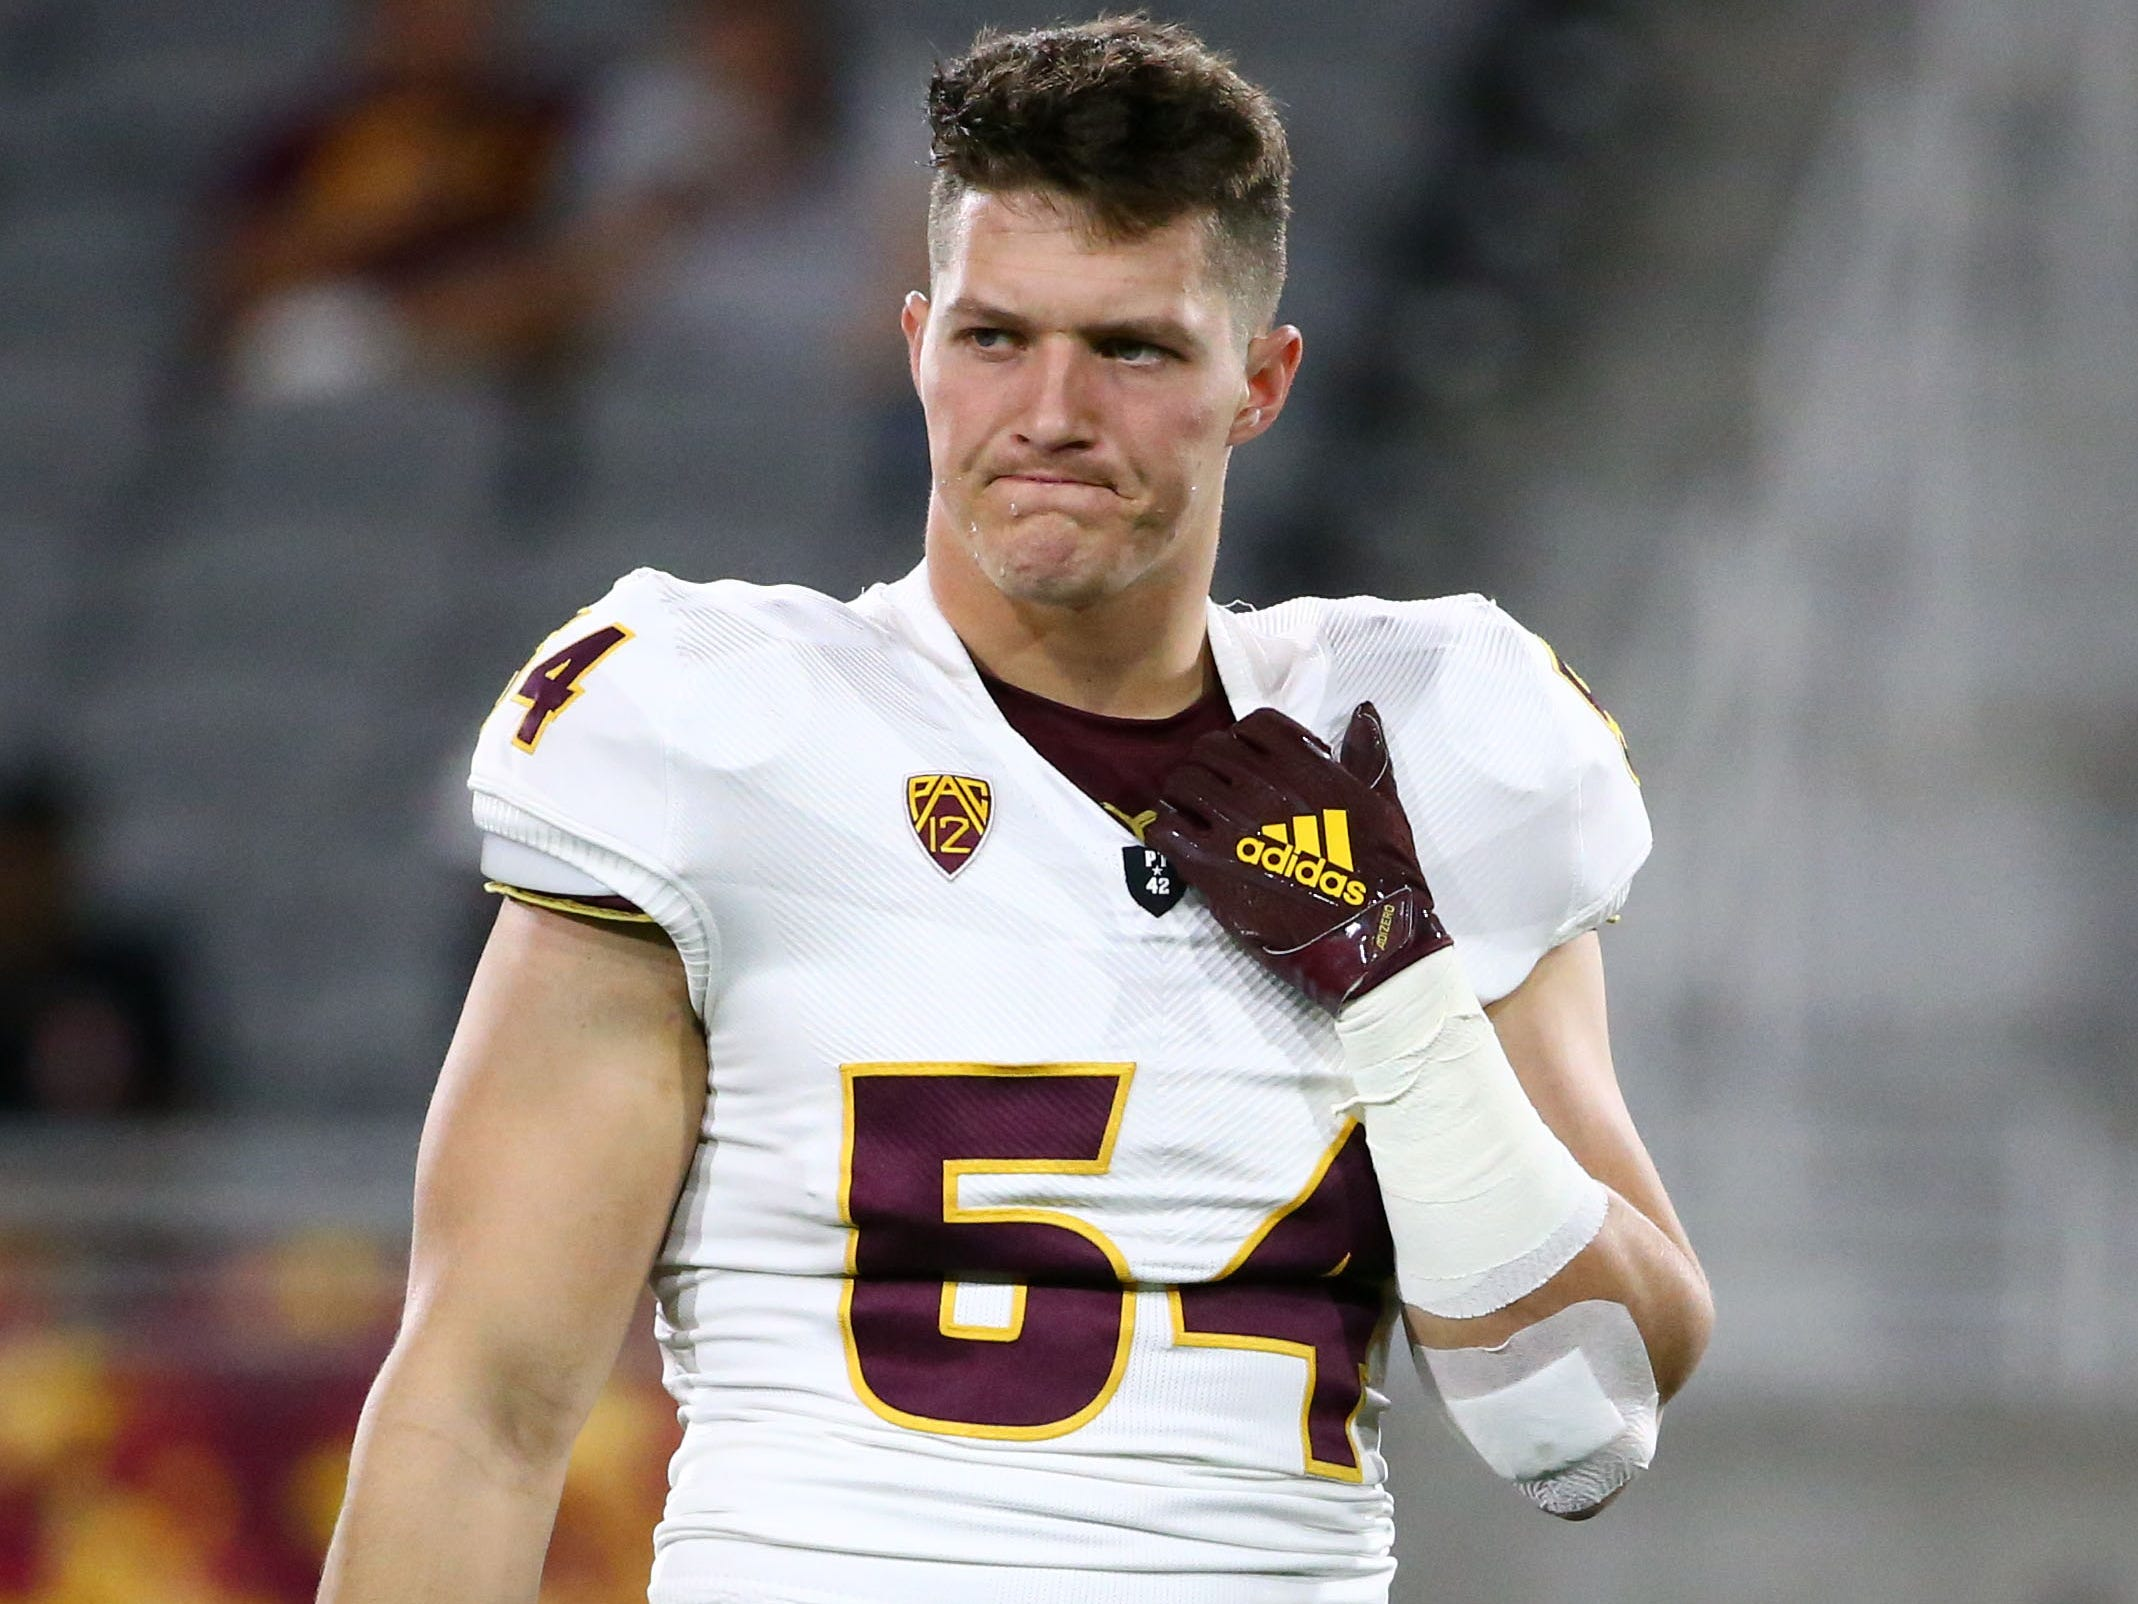 Arizona State linebacker Case Hatch (54) during the spring practice game on Feb. 28, 2019 at Sun Devil Stadium in Tempe, Ariz.